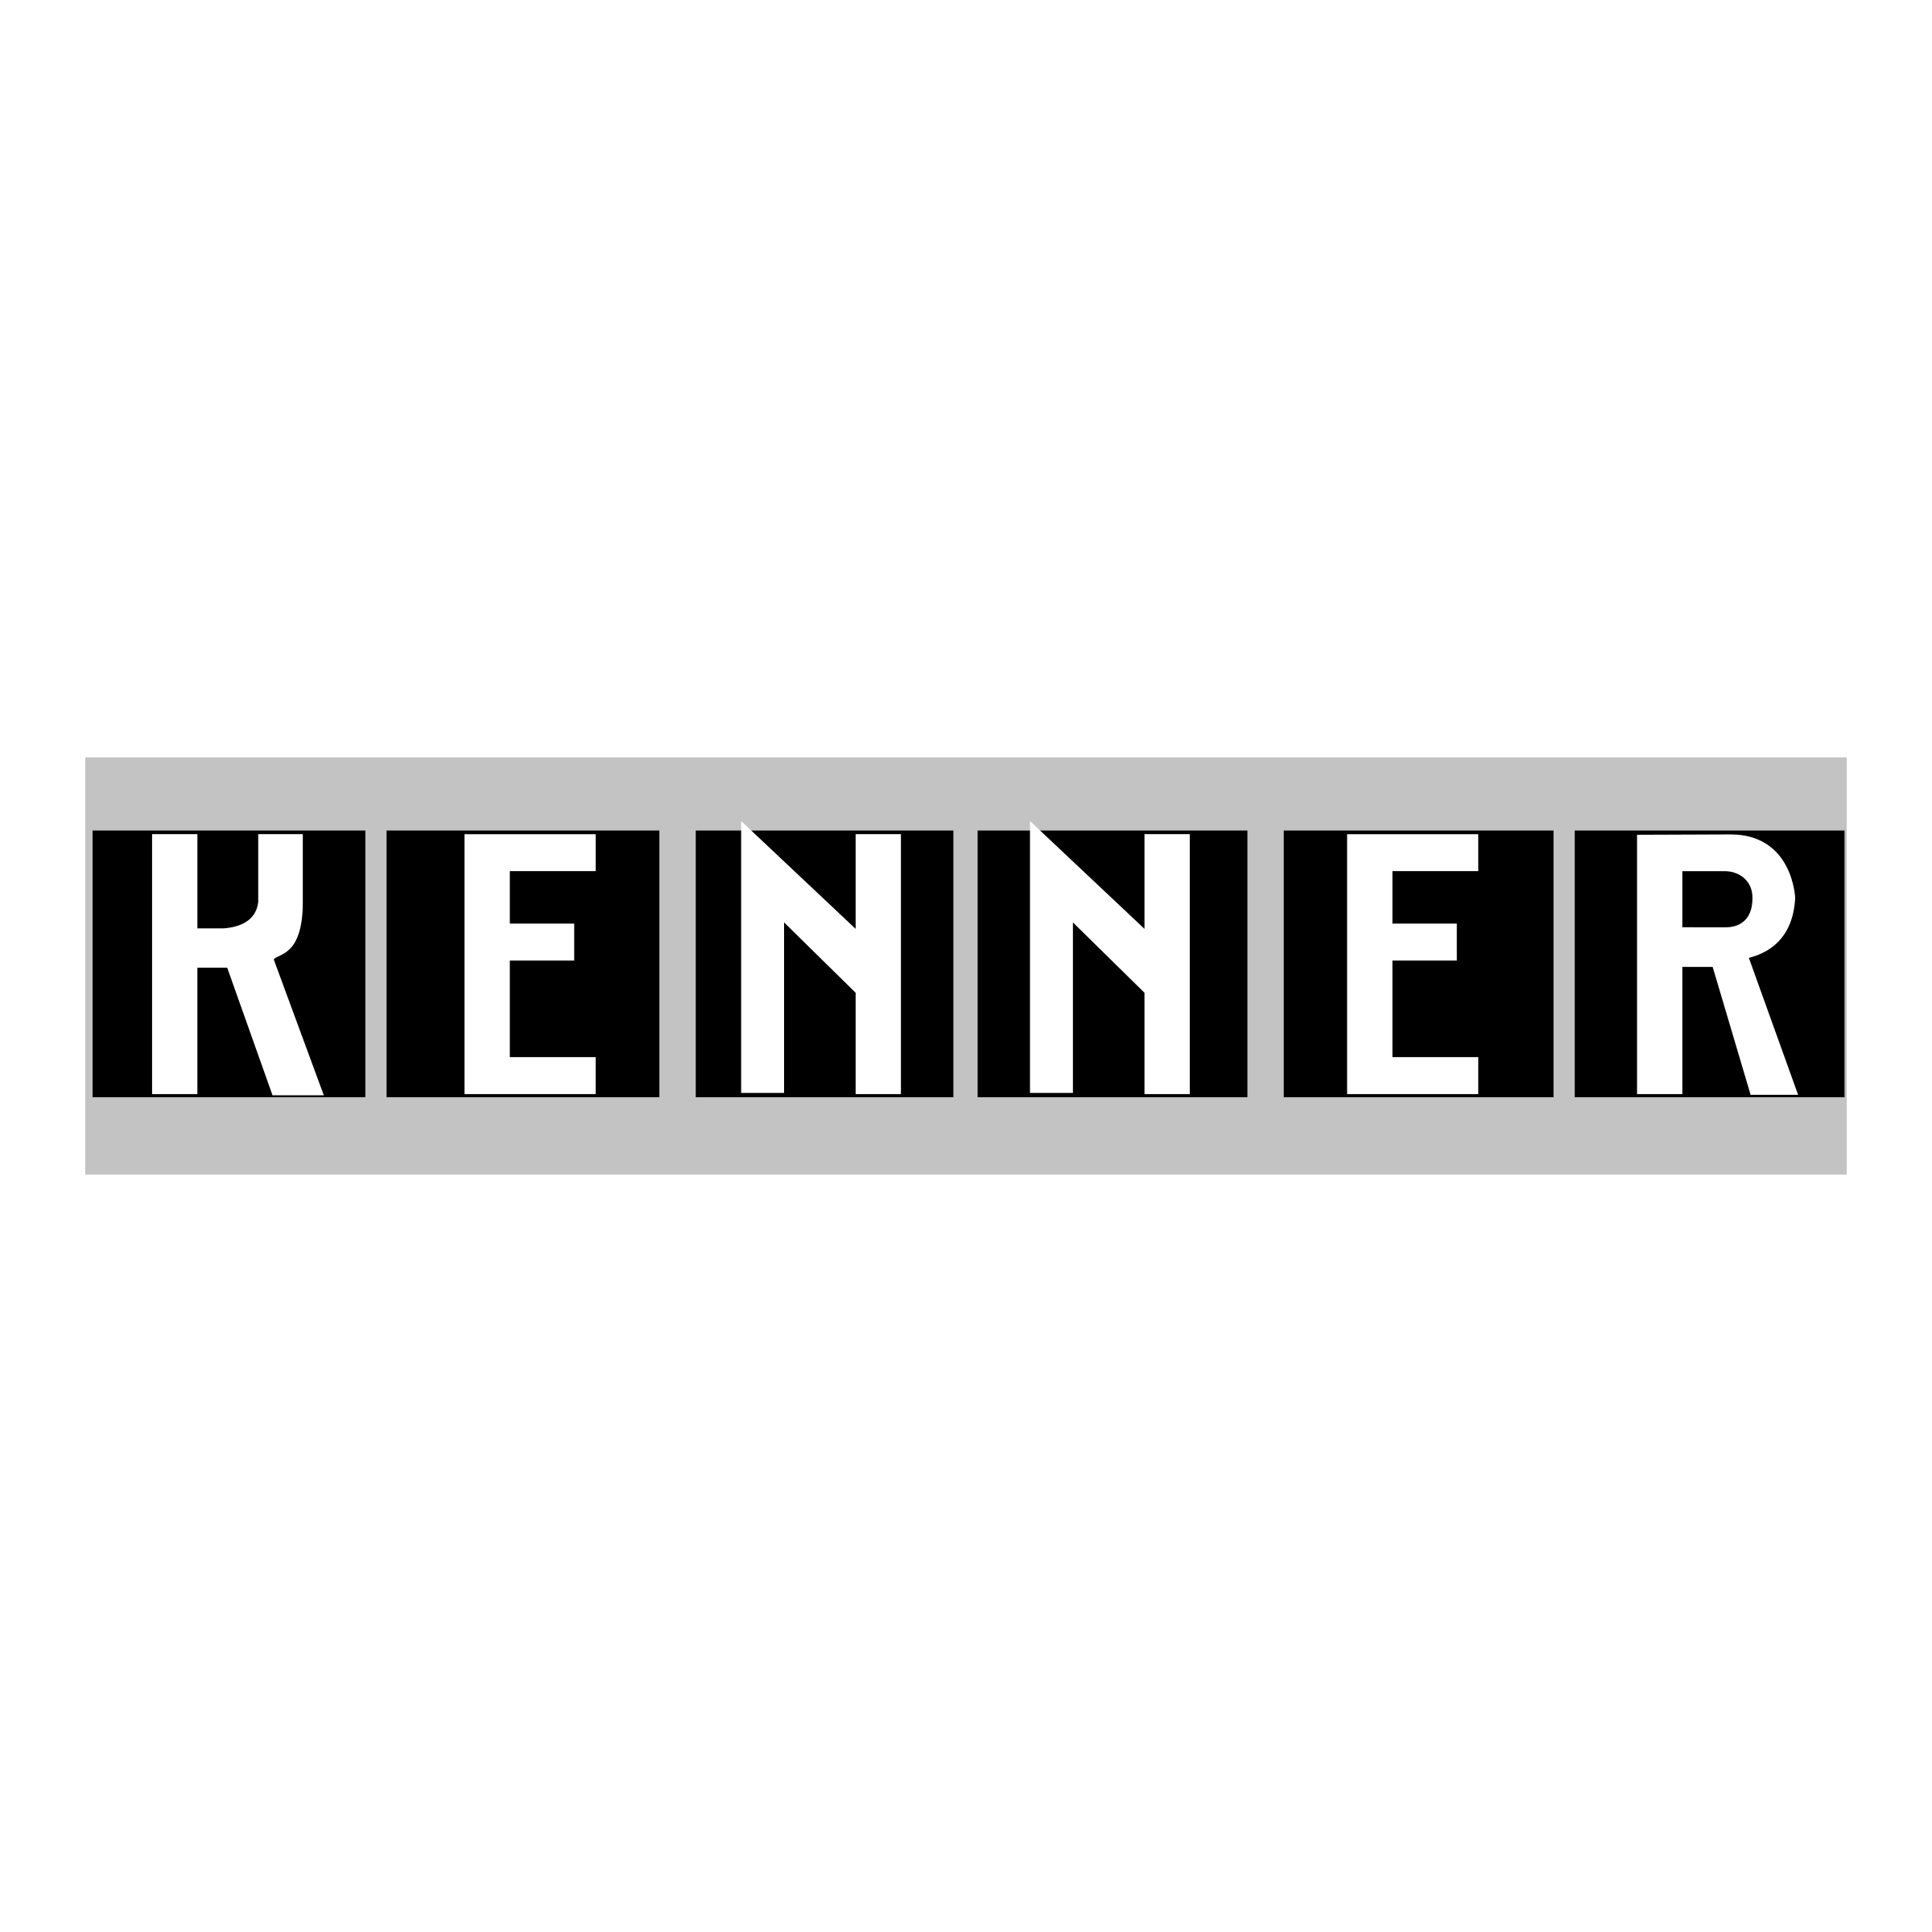 Kenner logo download free clipart with a transparent.